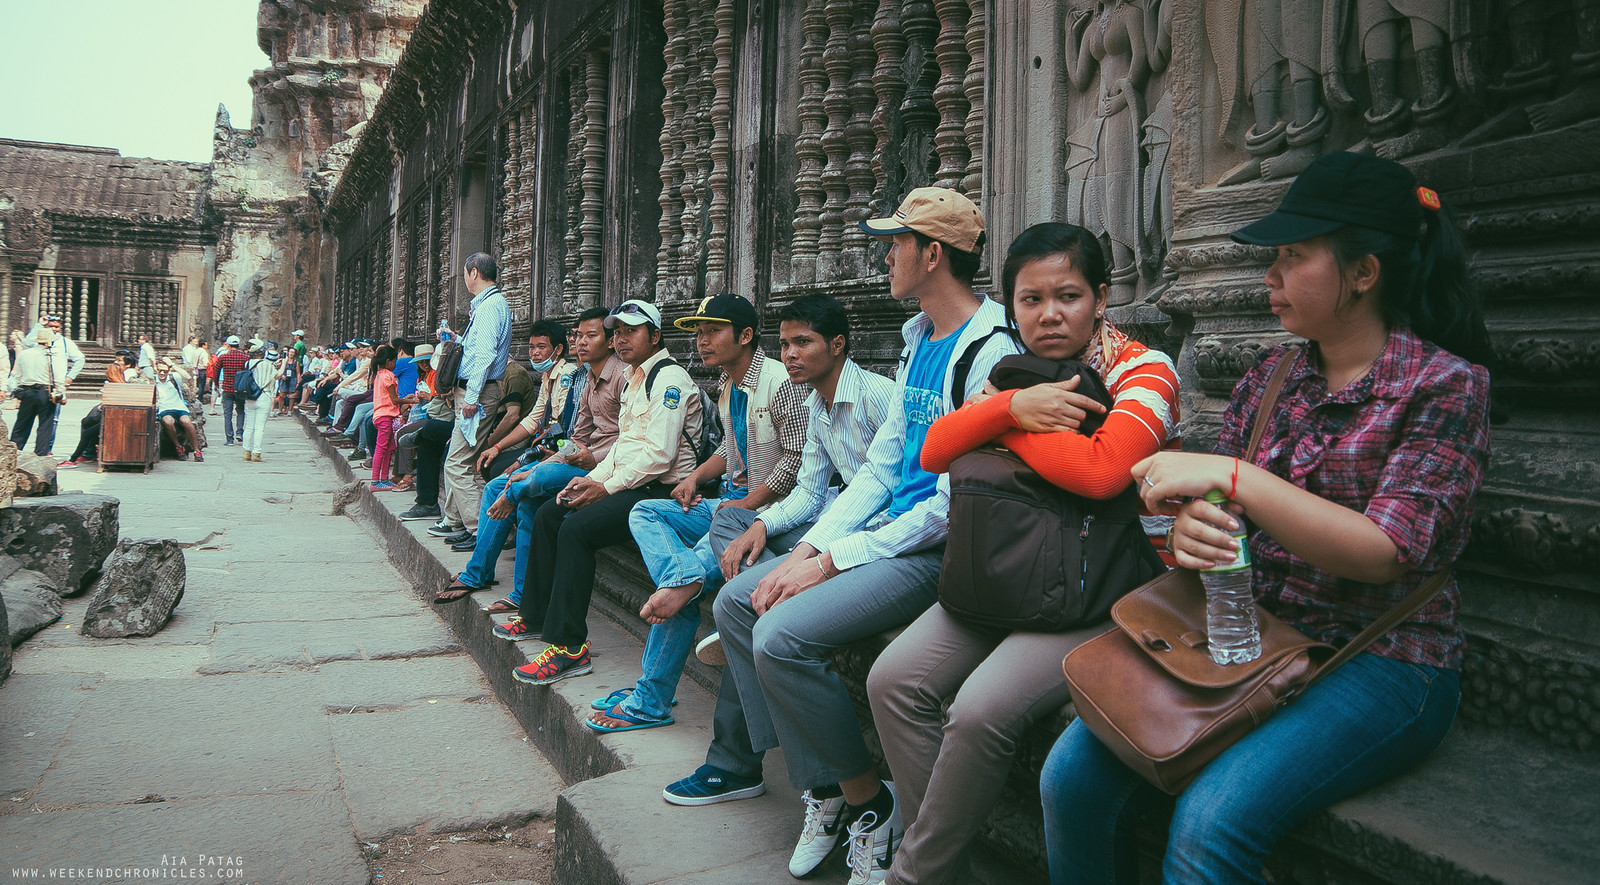 Tourists resting after a long walk to the inner part of Angkor Wat